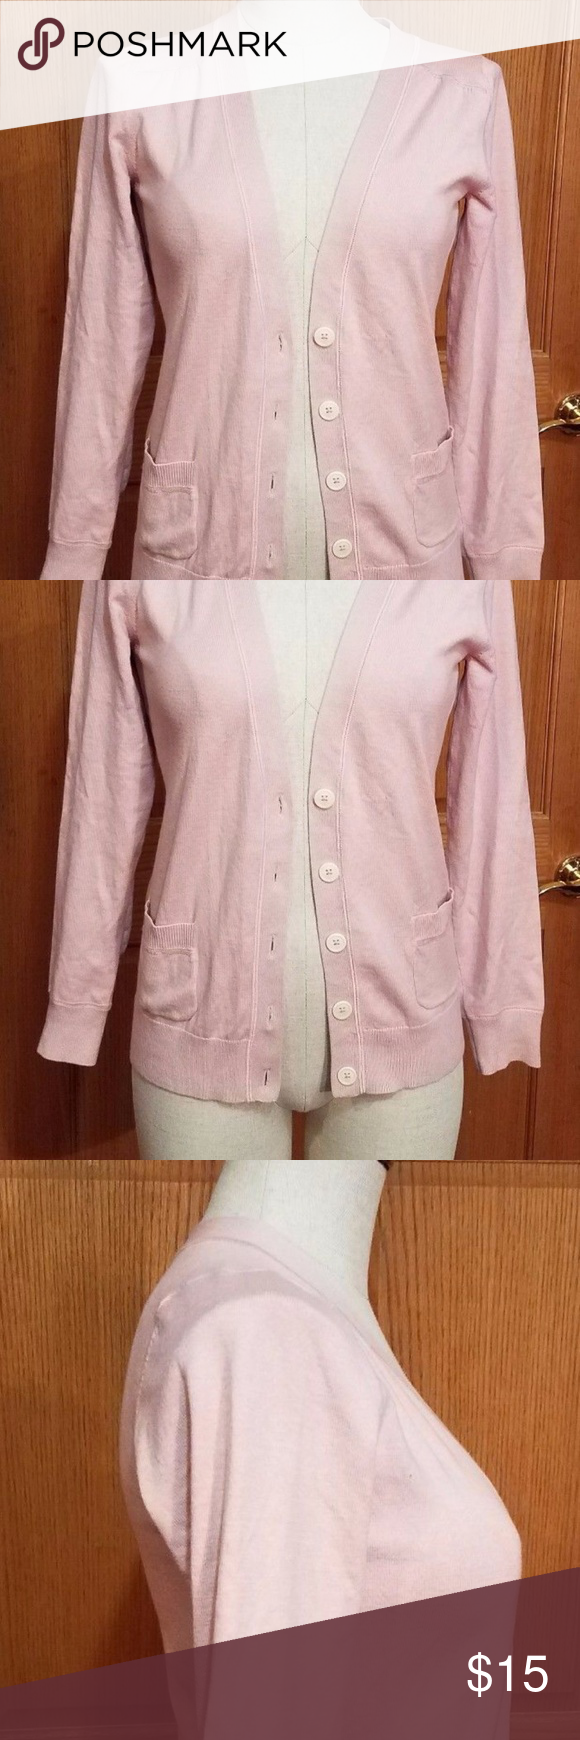 Boden Pink Button Down Cardigan Sweater size 4 | Boden, Pale pink ...